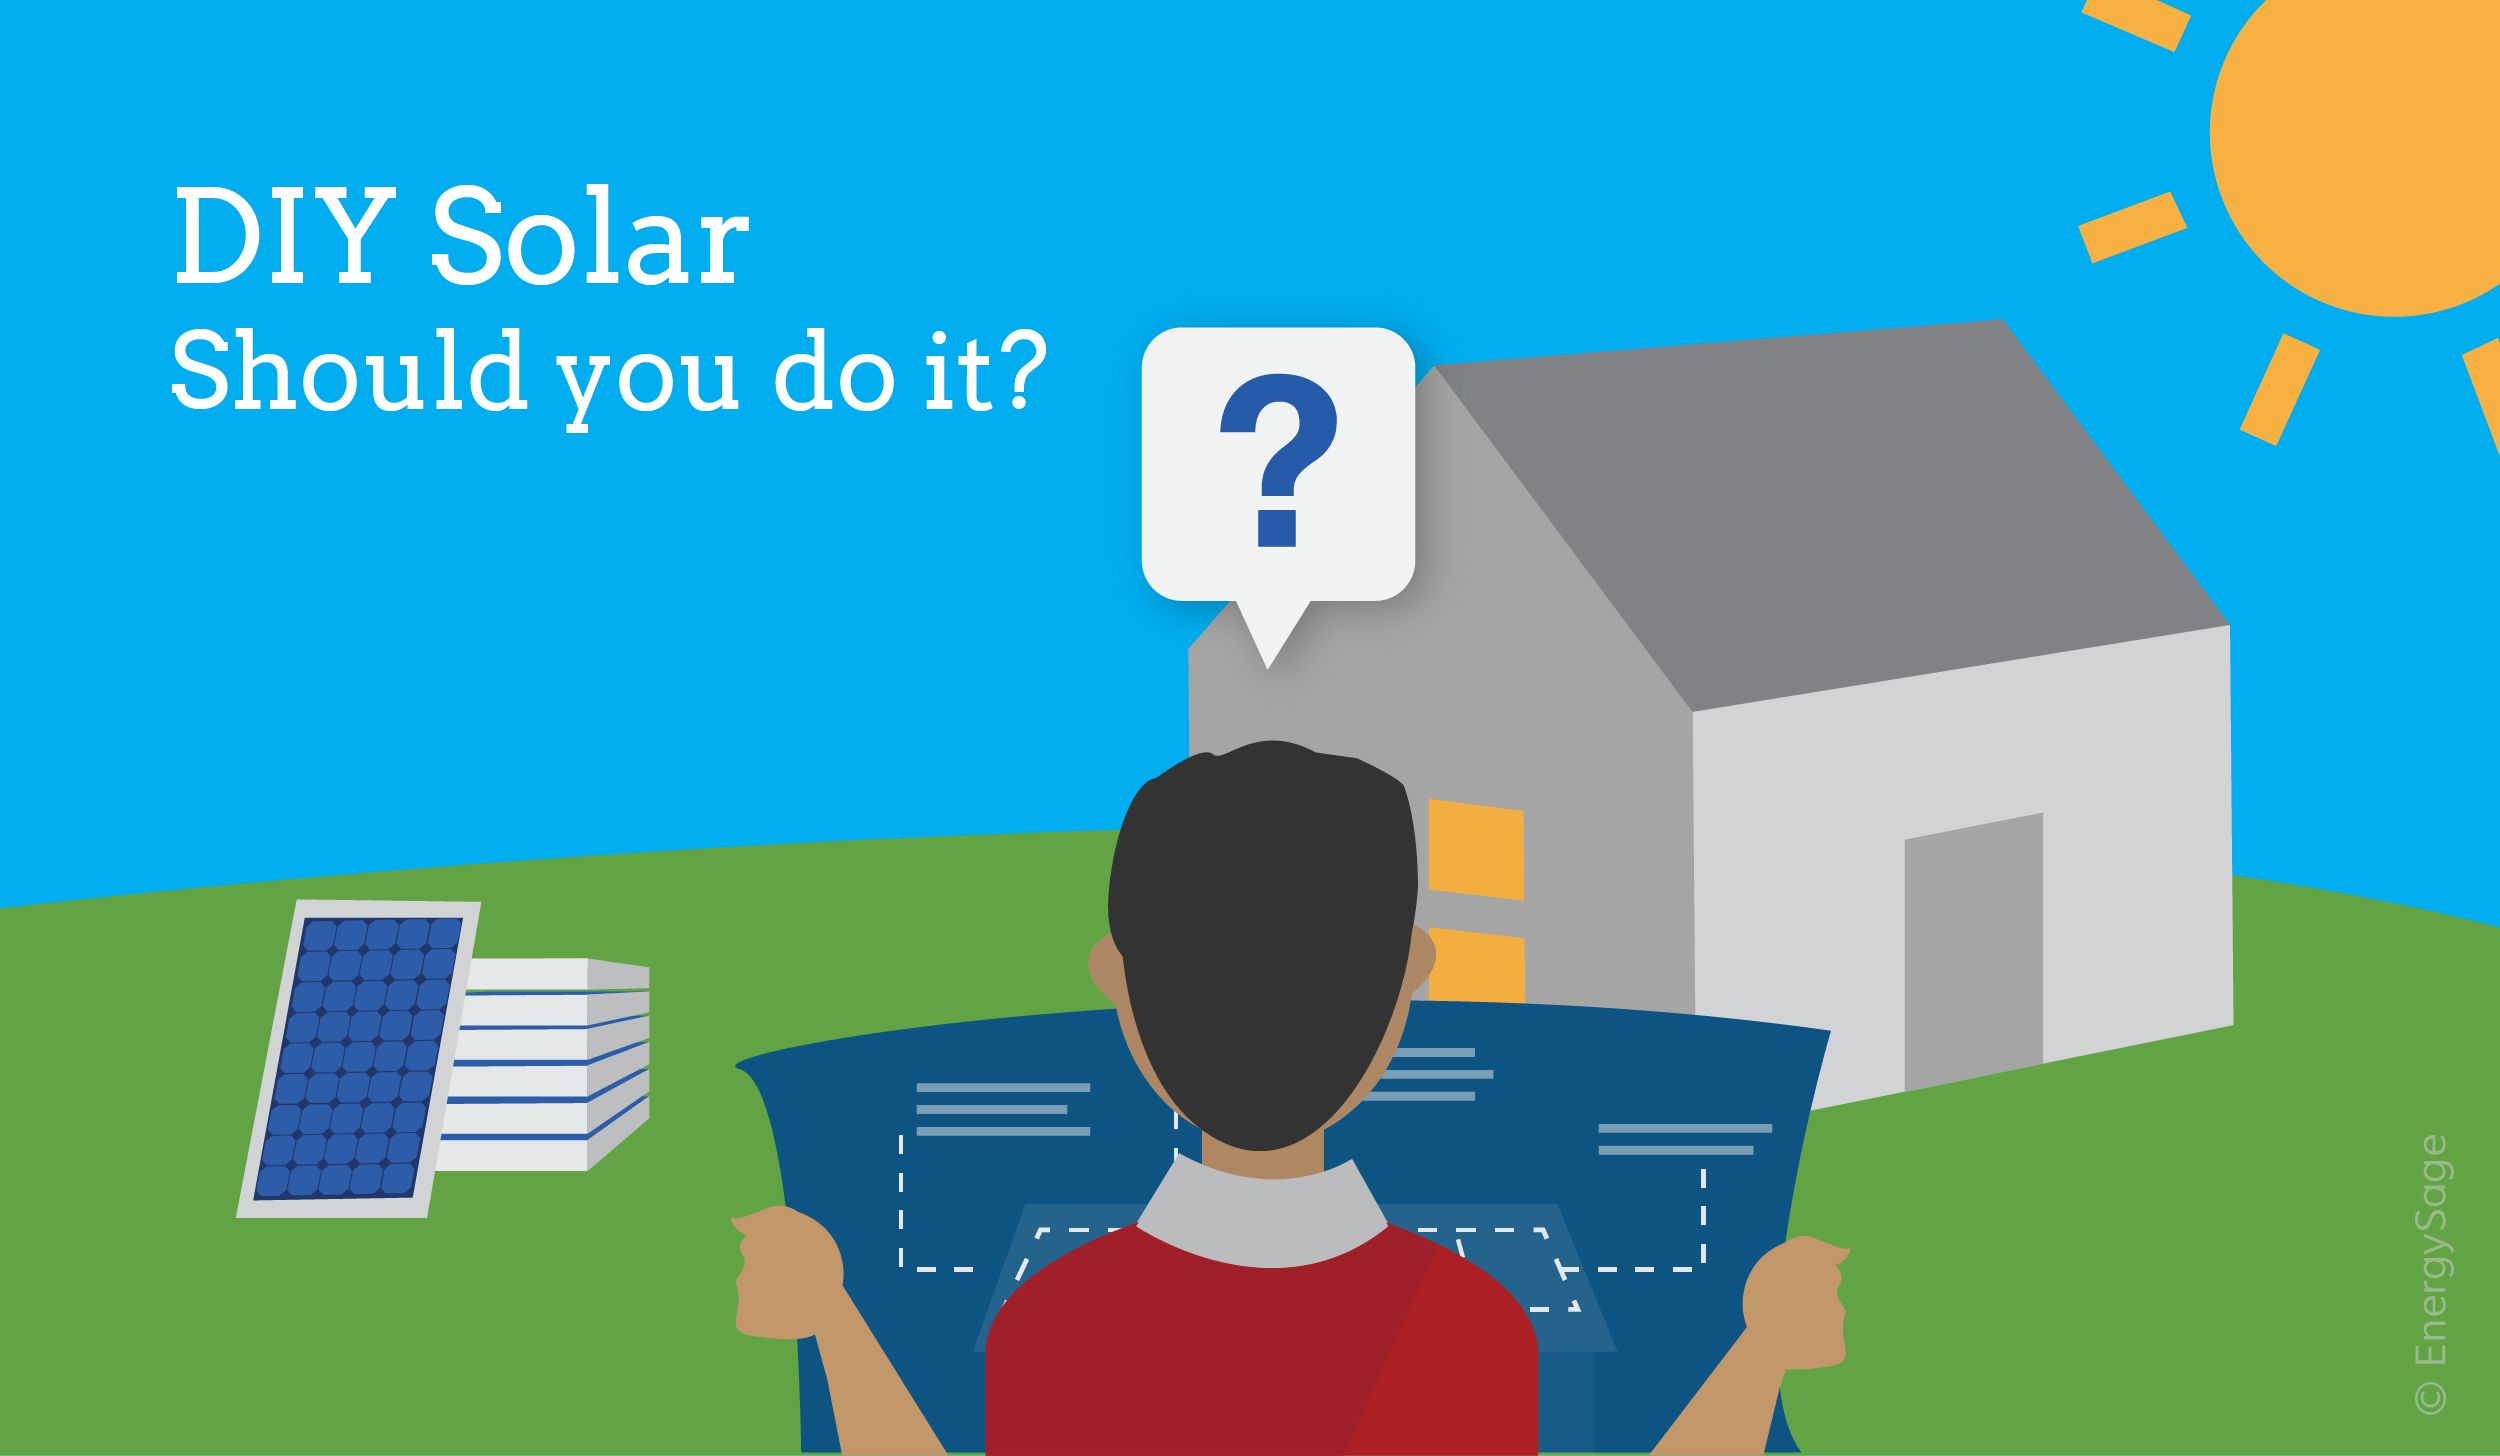 DIY Solar Pros and Cons: Does it Make Sense for You? | EnergySage